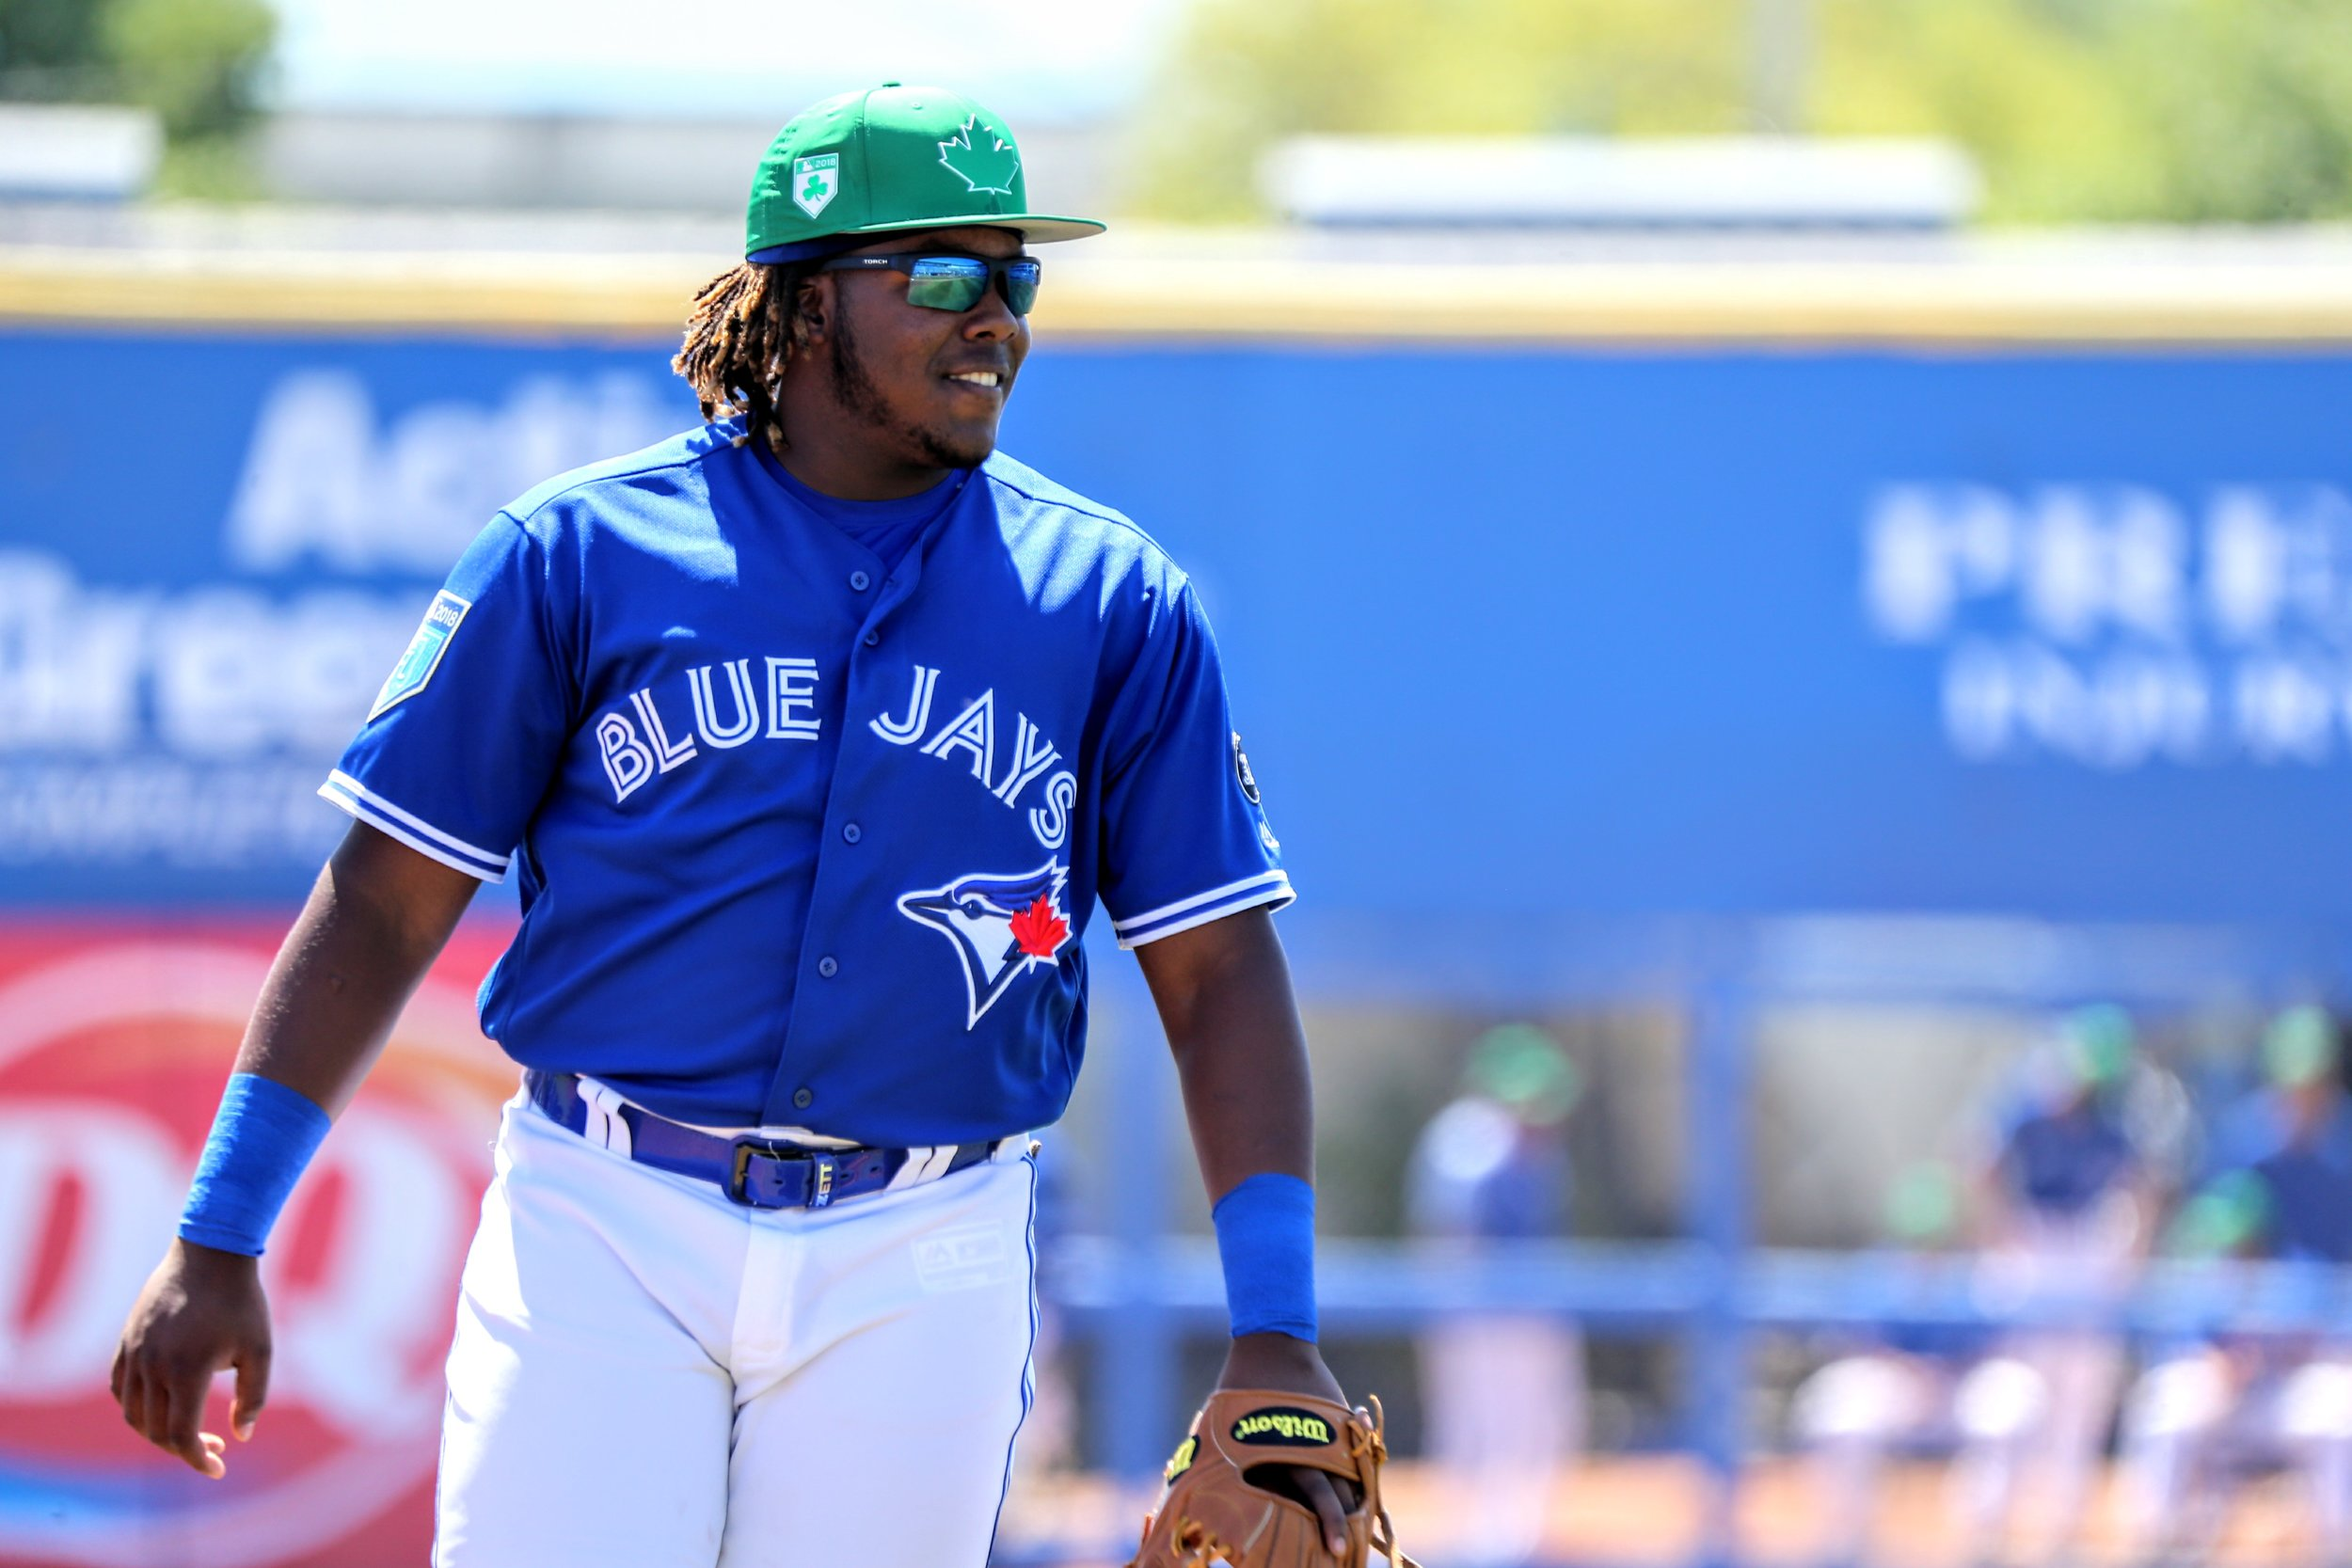 Montreal-born Vladimir Guerrero Jr. makes his Canada Day team debut in 2019. Photo: Amanda Fewer